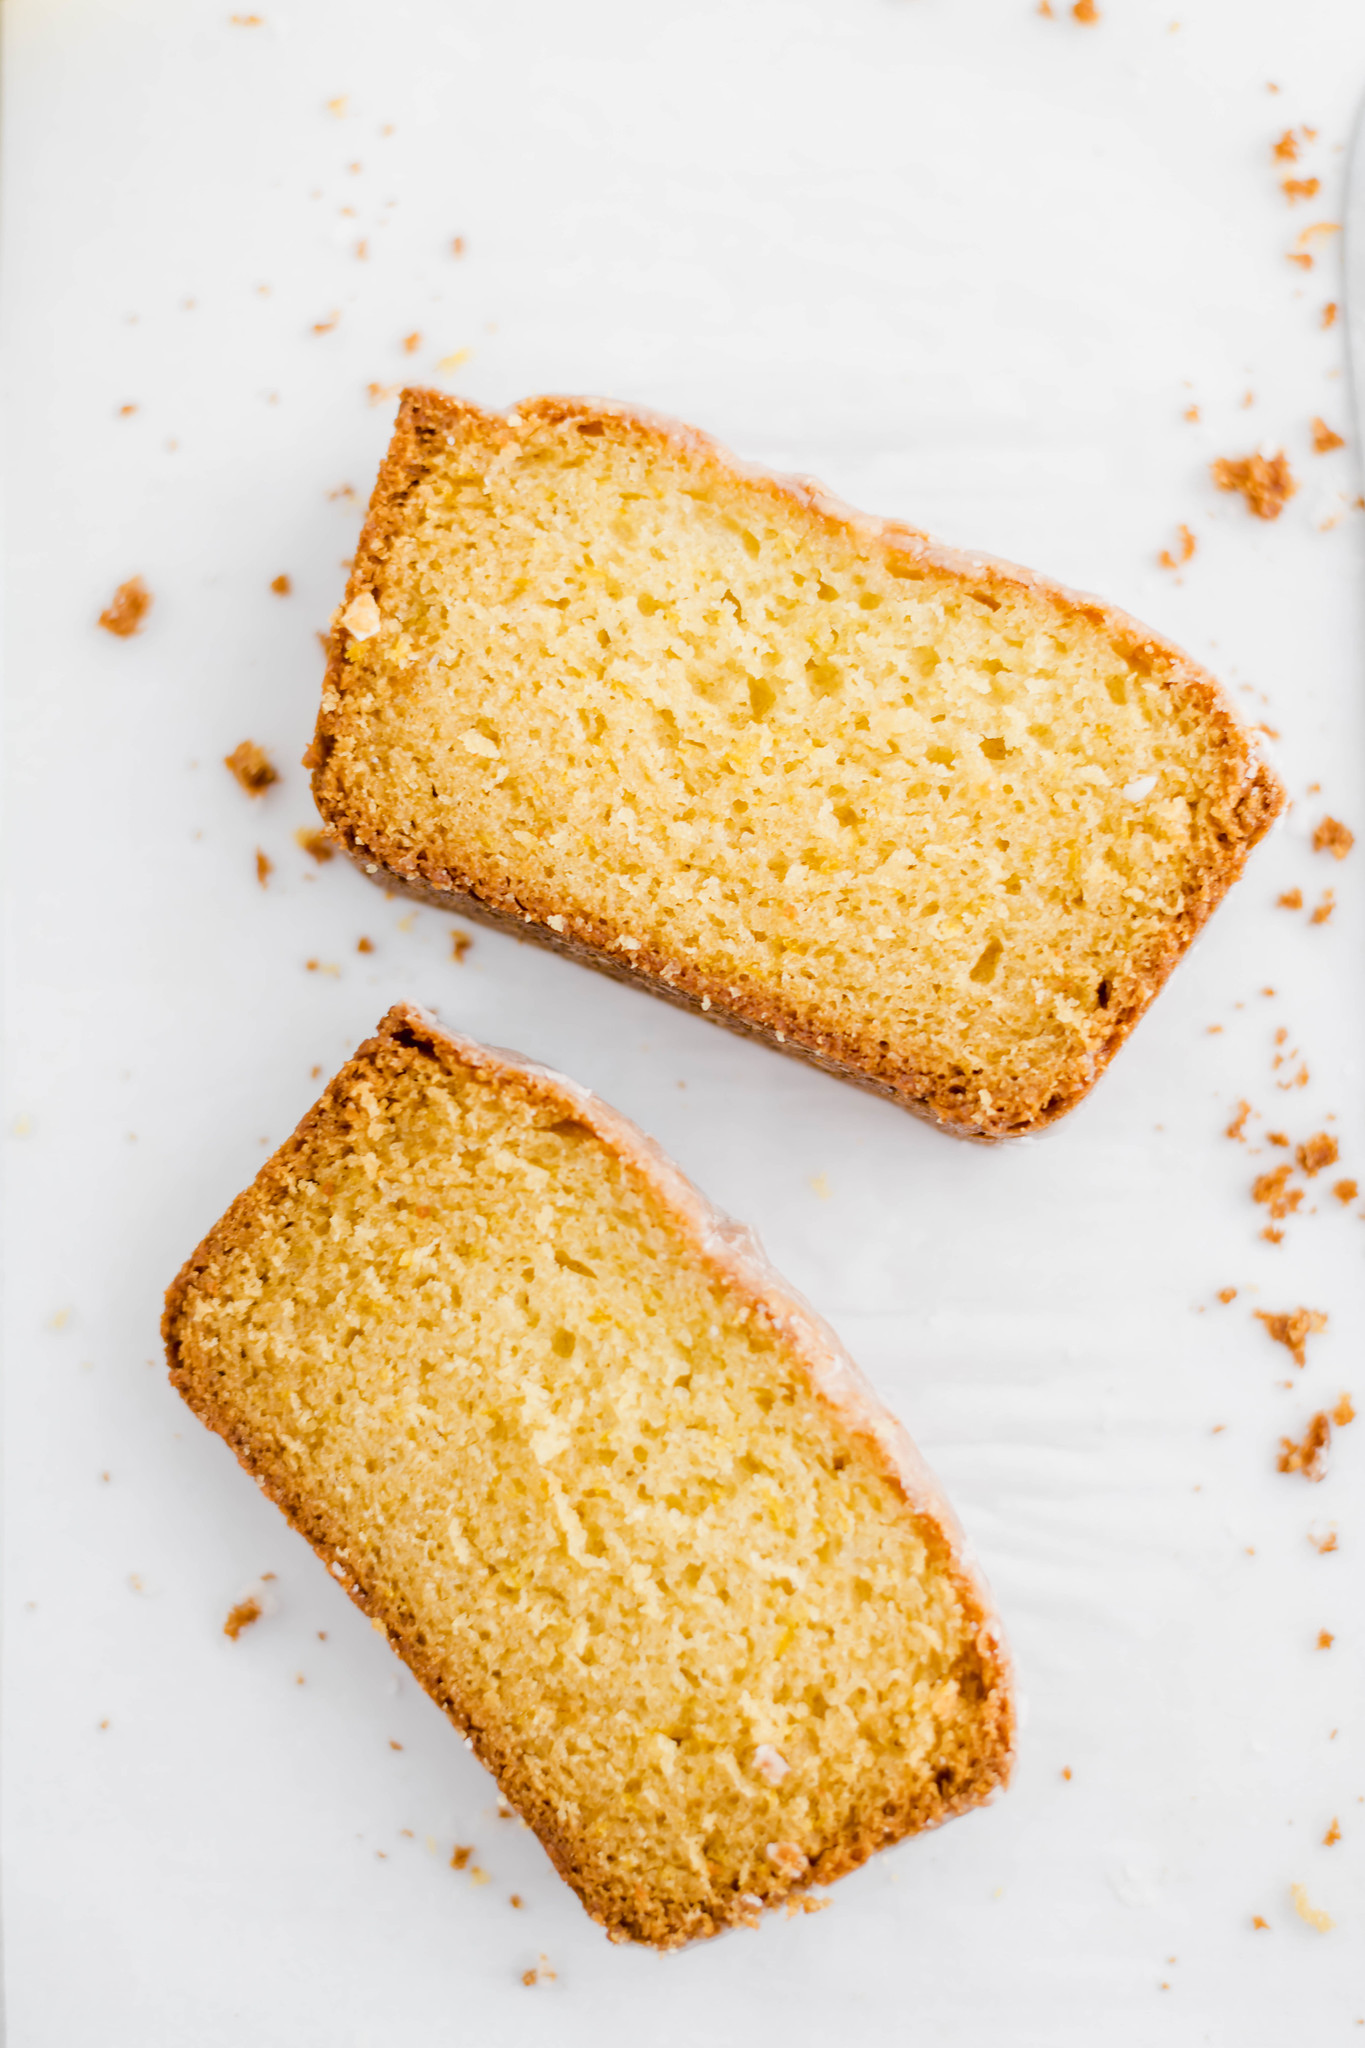 Two slices of starbucks lemon loaf with crumbs surrounding them on a white backdrop.